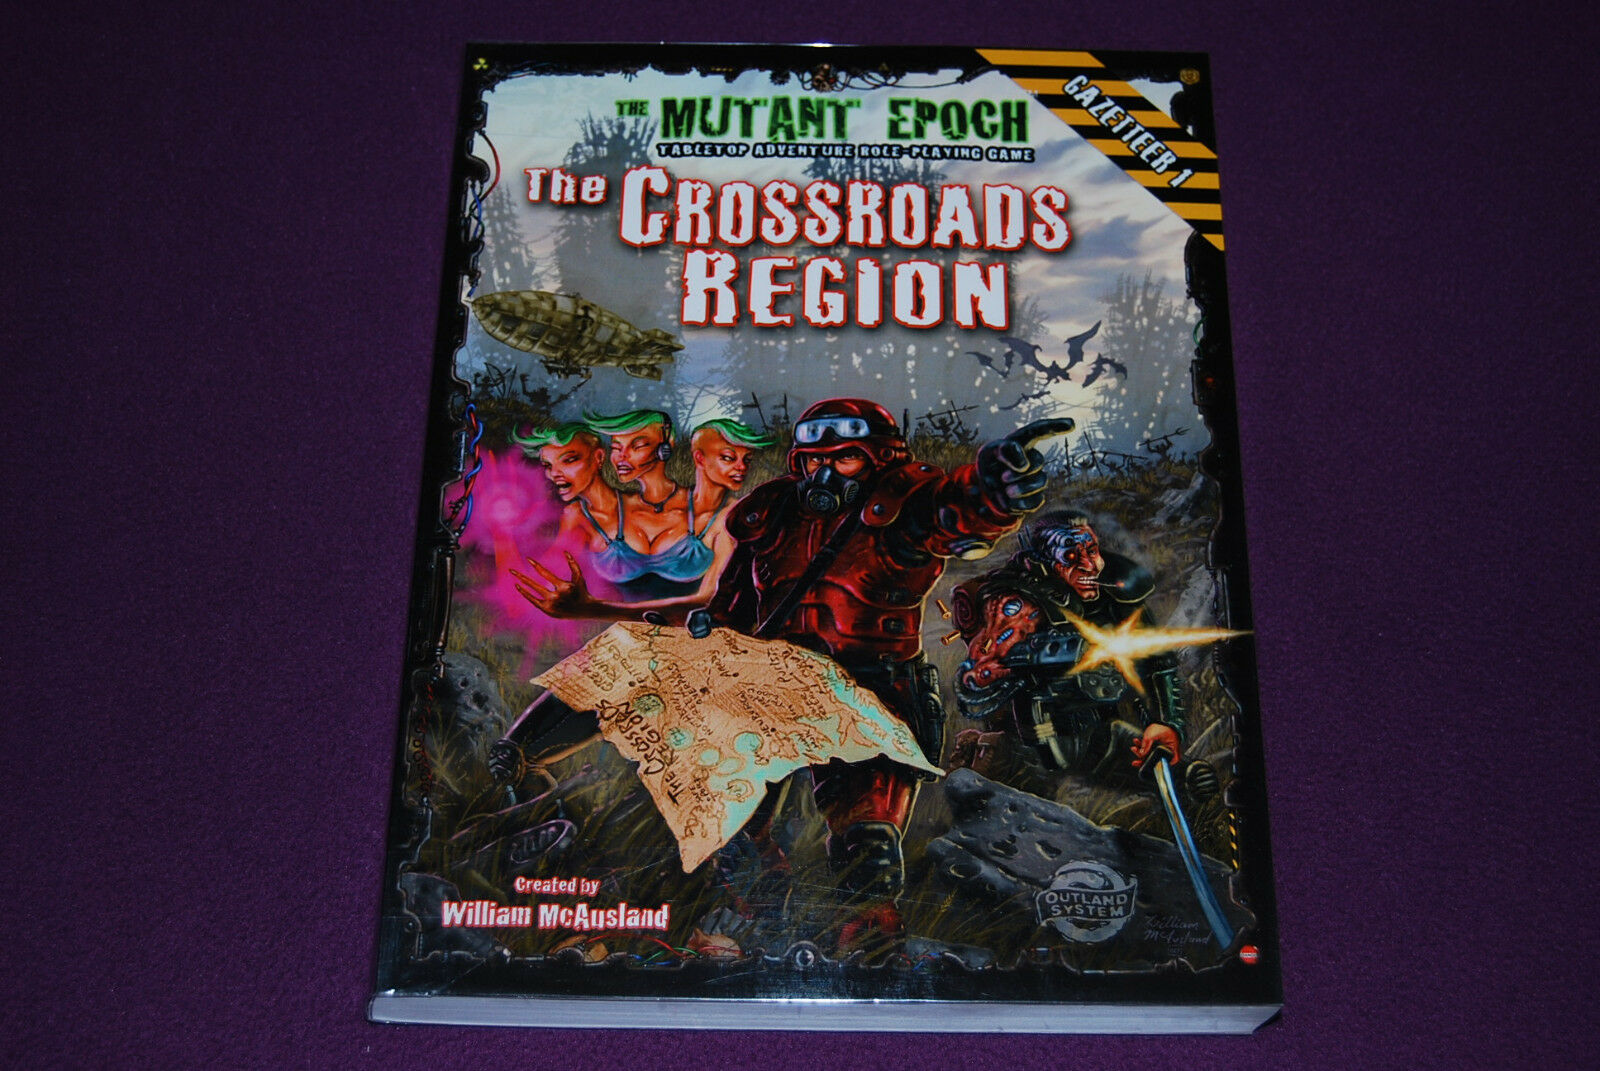 THE MUTANT EPOCH Tabletop RPG JDR Jeu de Role - Crossroads Region Gazetteer 1